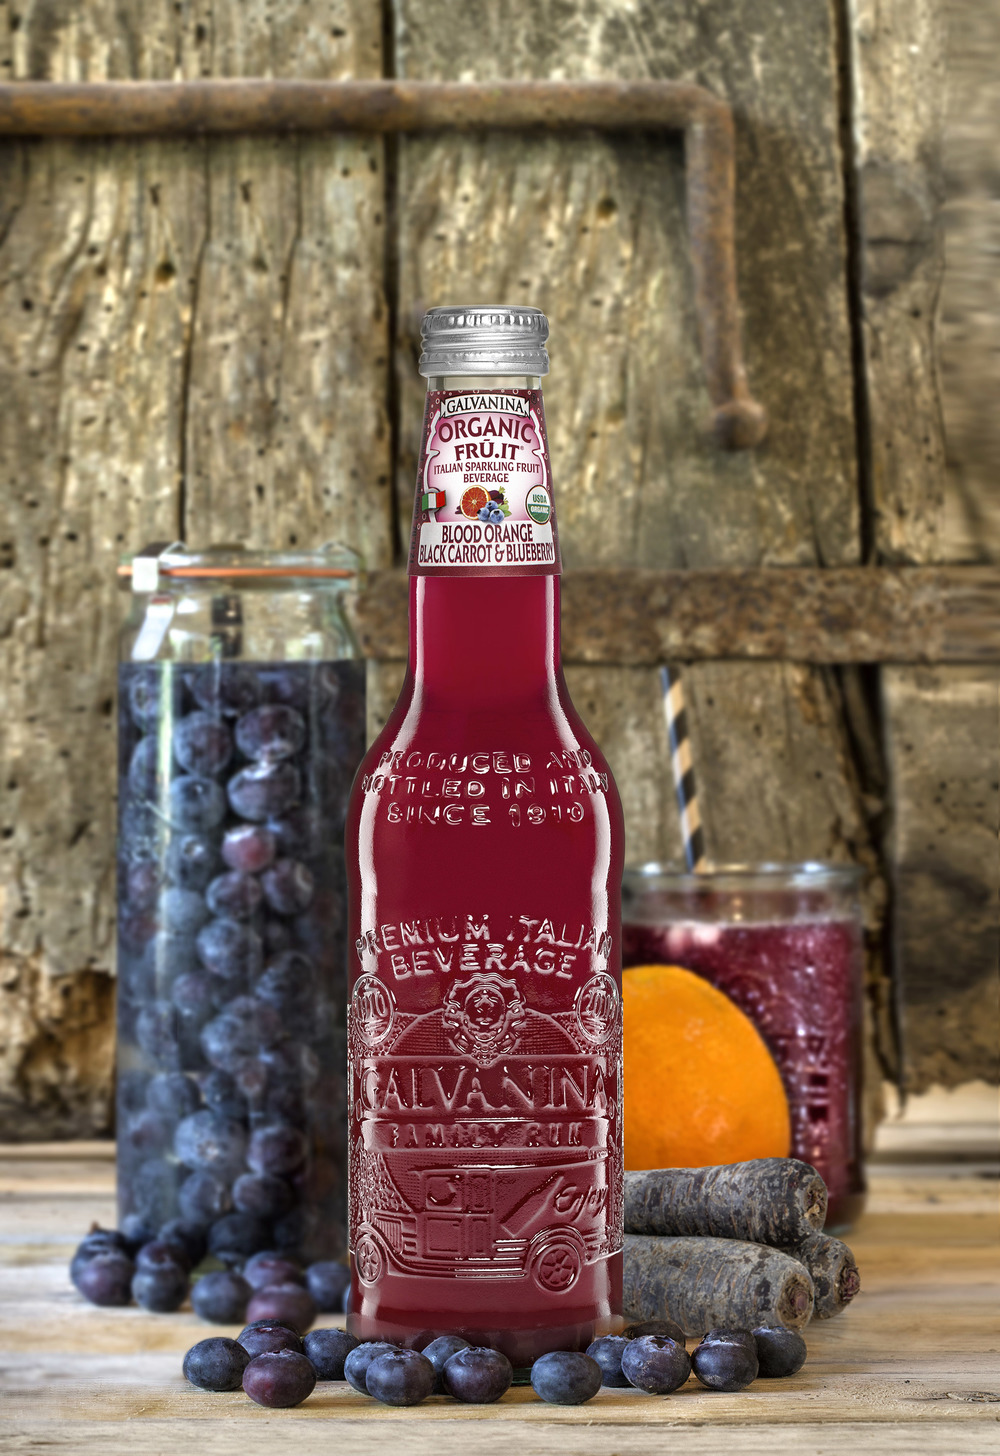 Sofi award winning Blood Orange, Black Carrot, and Blueberry flavored organic sparkling beverage.  (Image courtesy of La Galvanina)